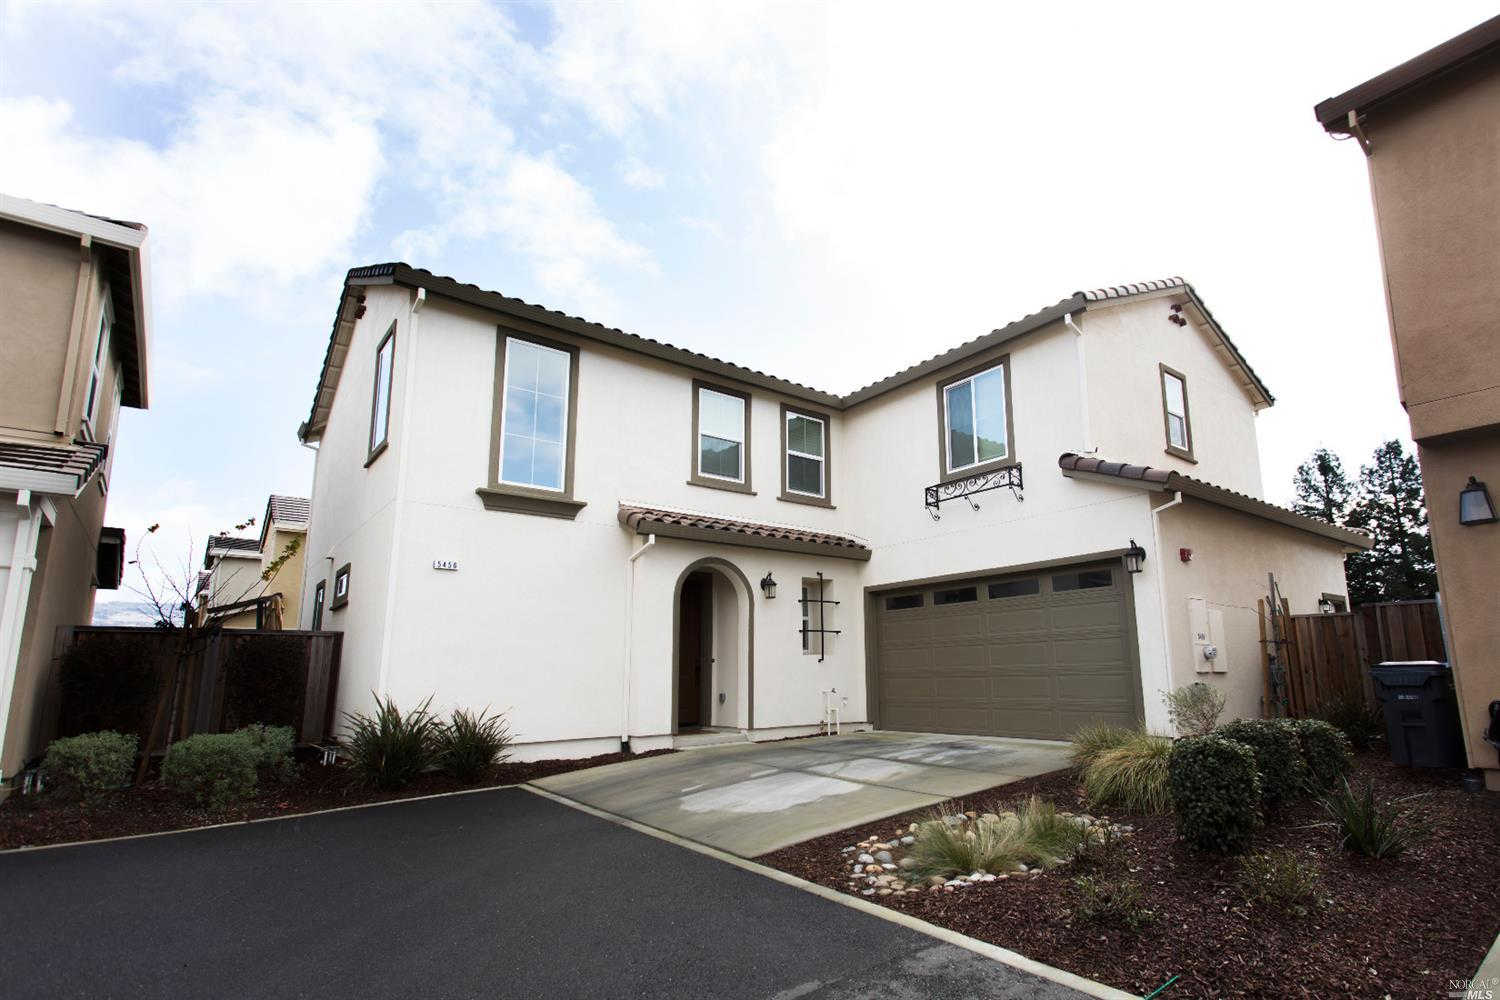 5456 Kaitlyn Place, Rohnert Park, CA 94928 has an Open House on  Sunday, January 19, 2020 12:00 PM to 3:00 PM